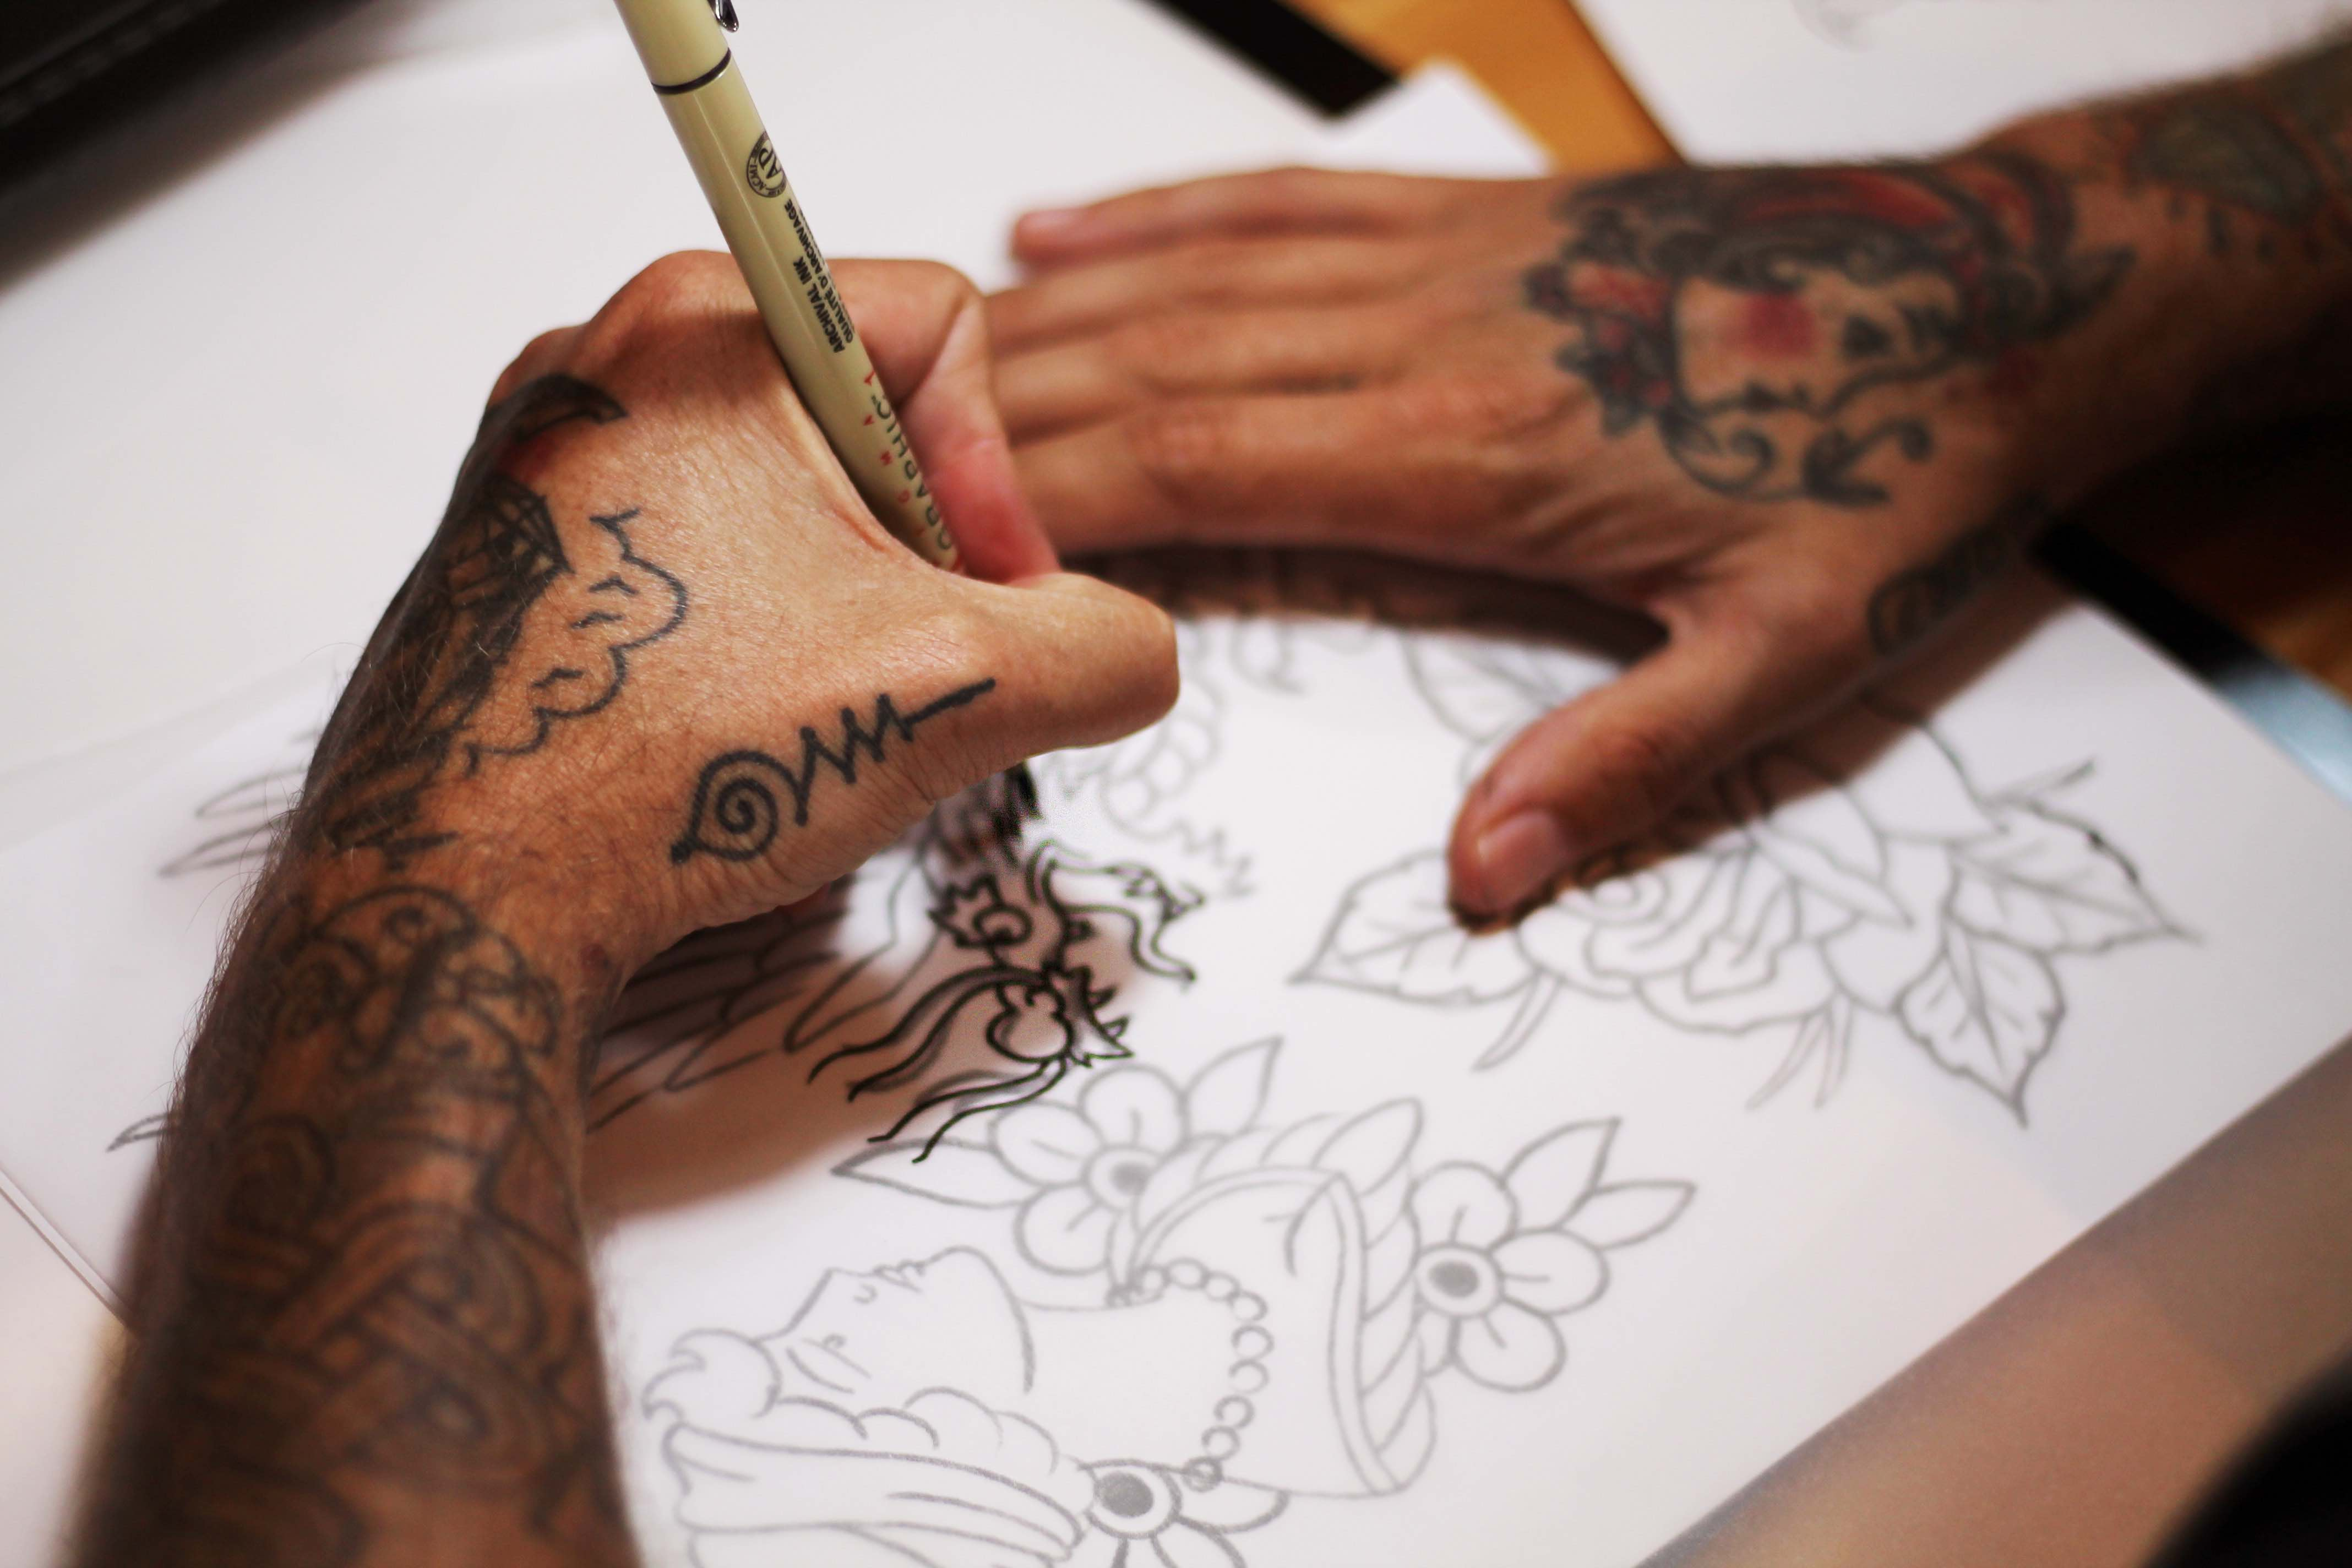 Details for the 2018 South African International Tattoo Convention